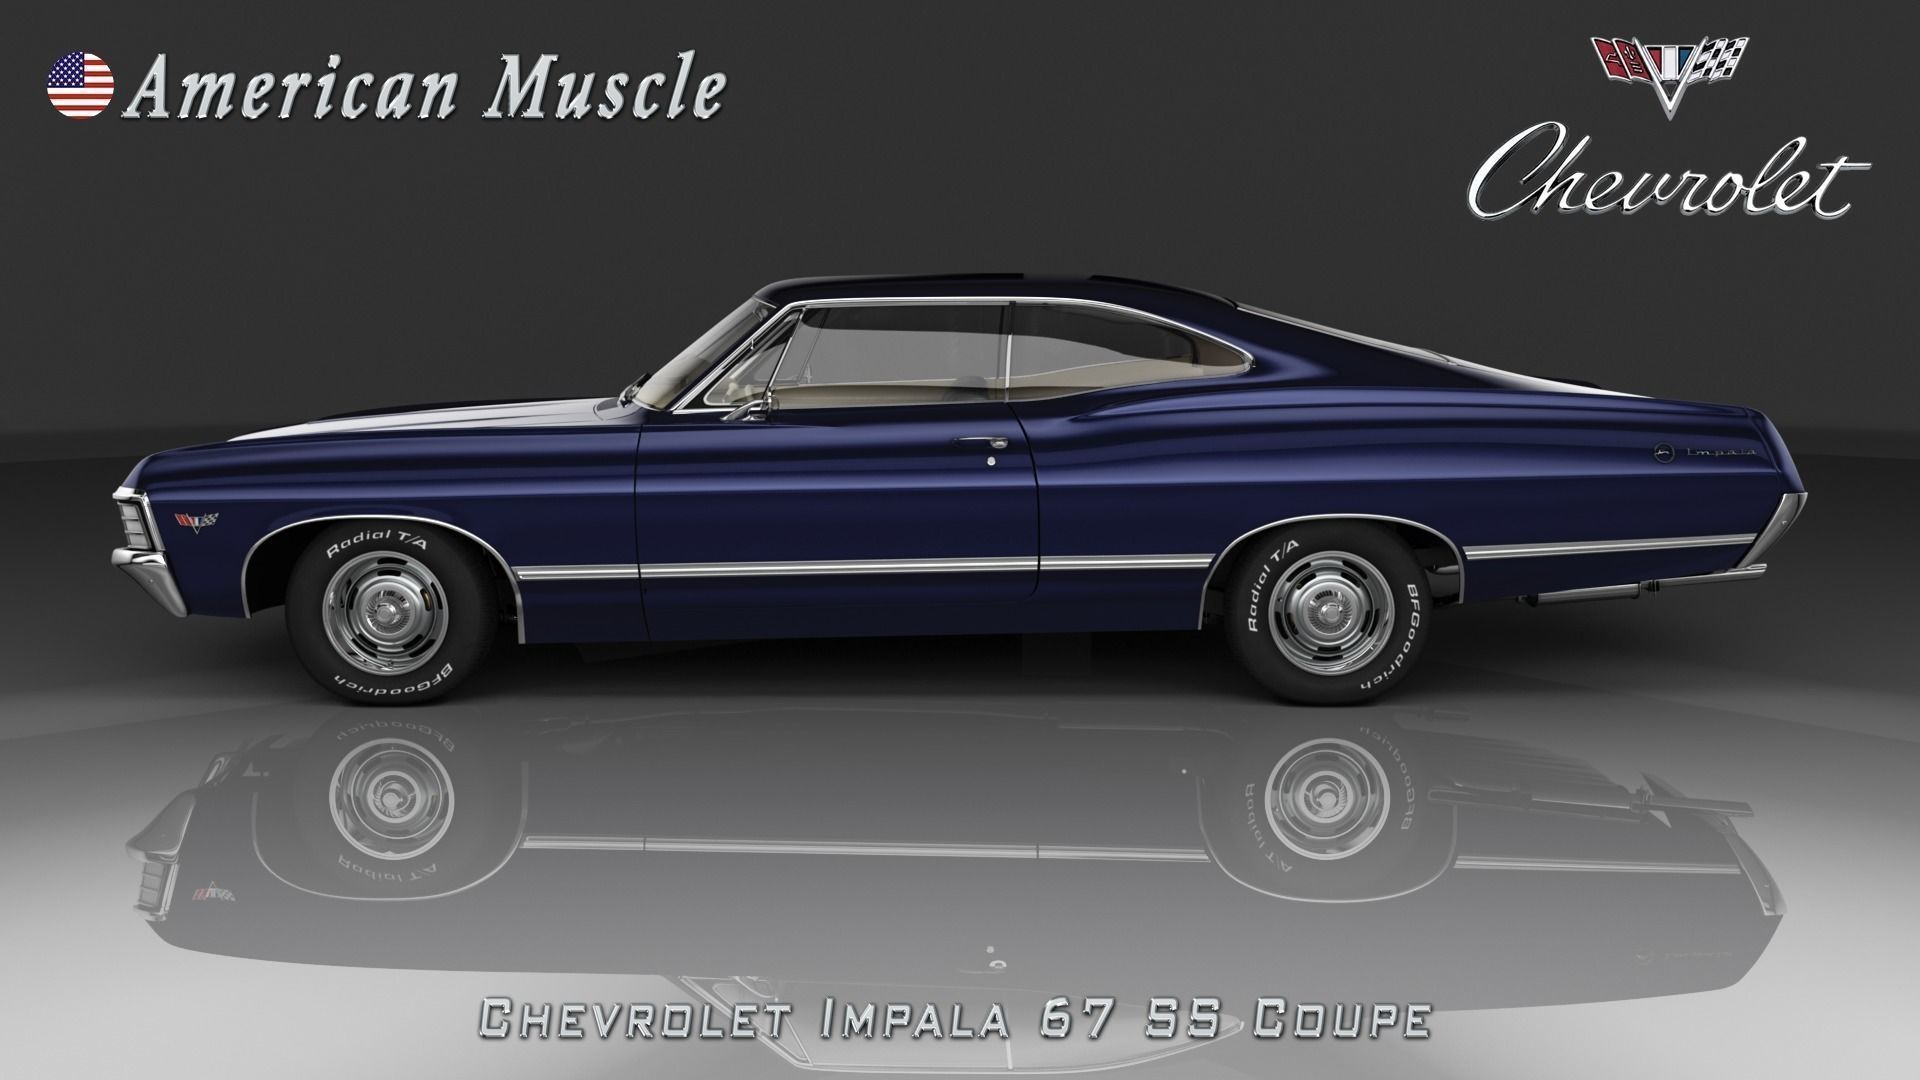 chevrolet impala ss 67 coupe'andersonflat. high quality template